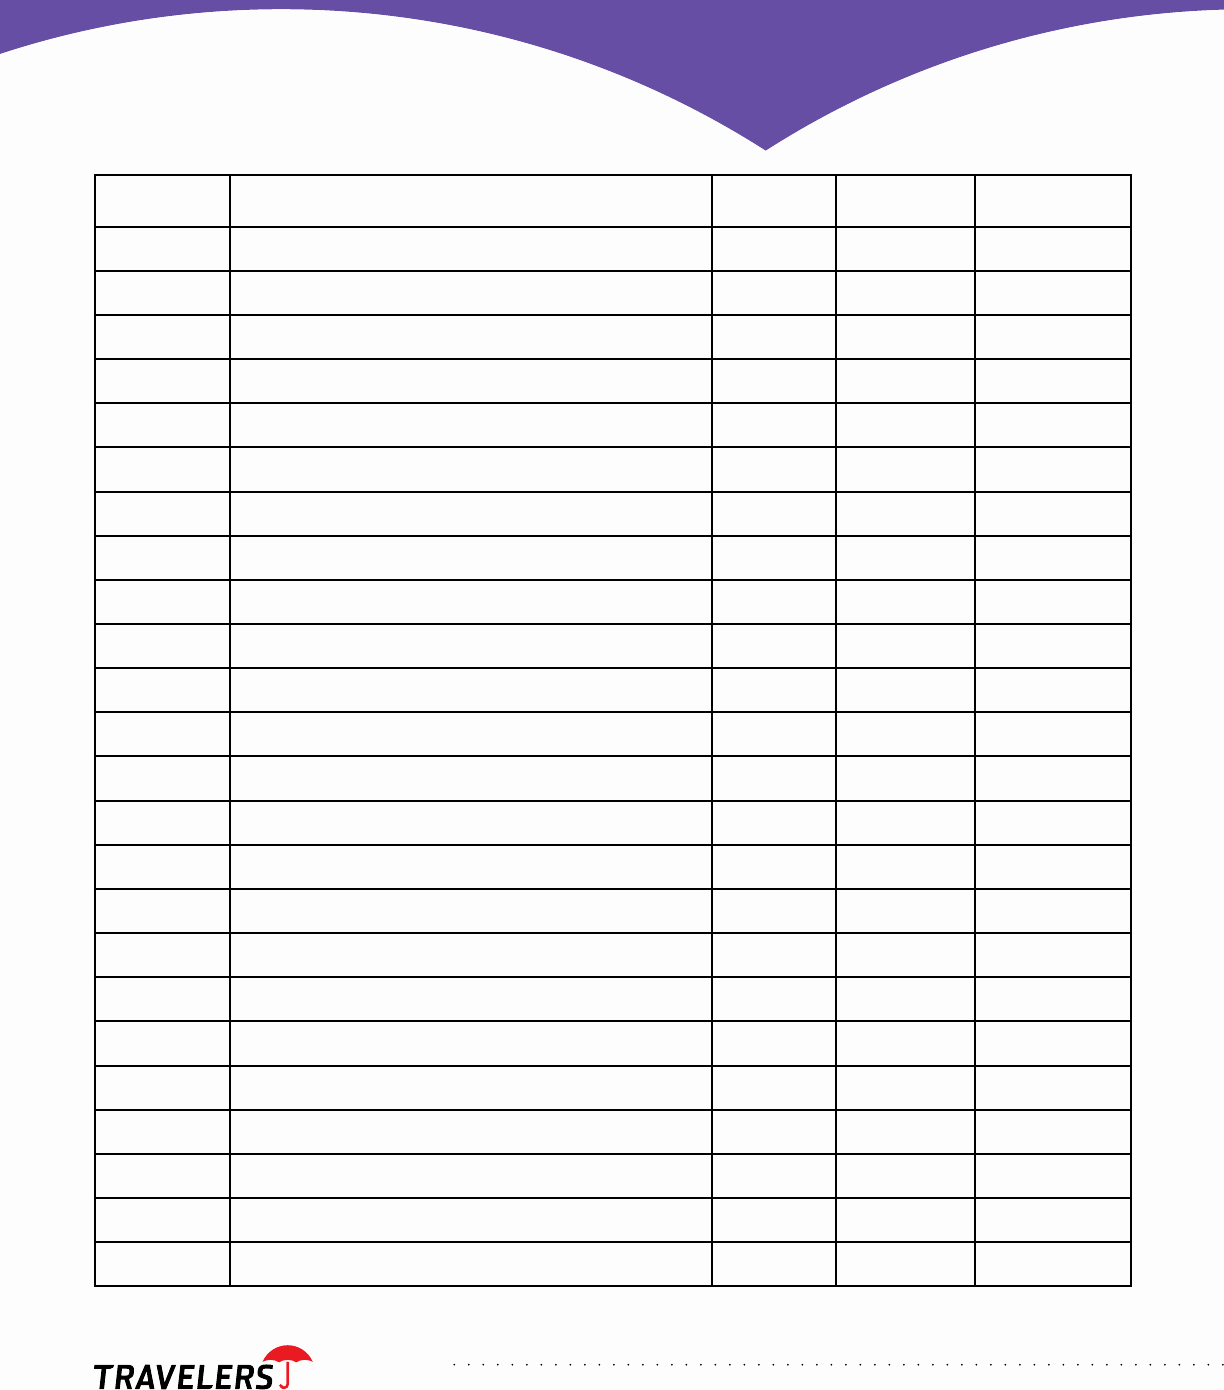 Personal Property Inventory Template Best Of Download Personal Property Inventory Spreadsheet Free